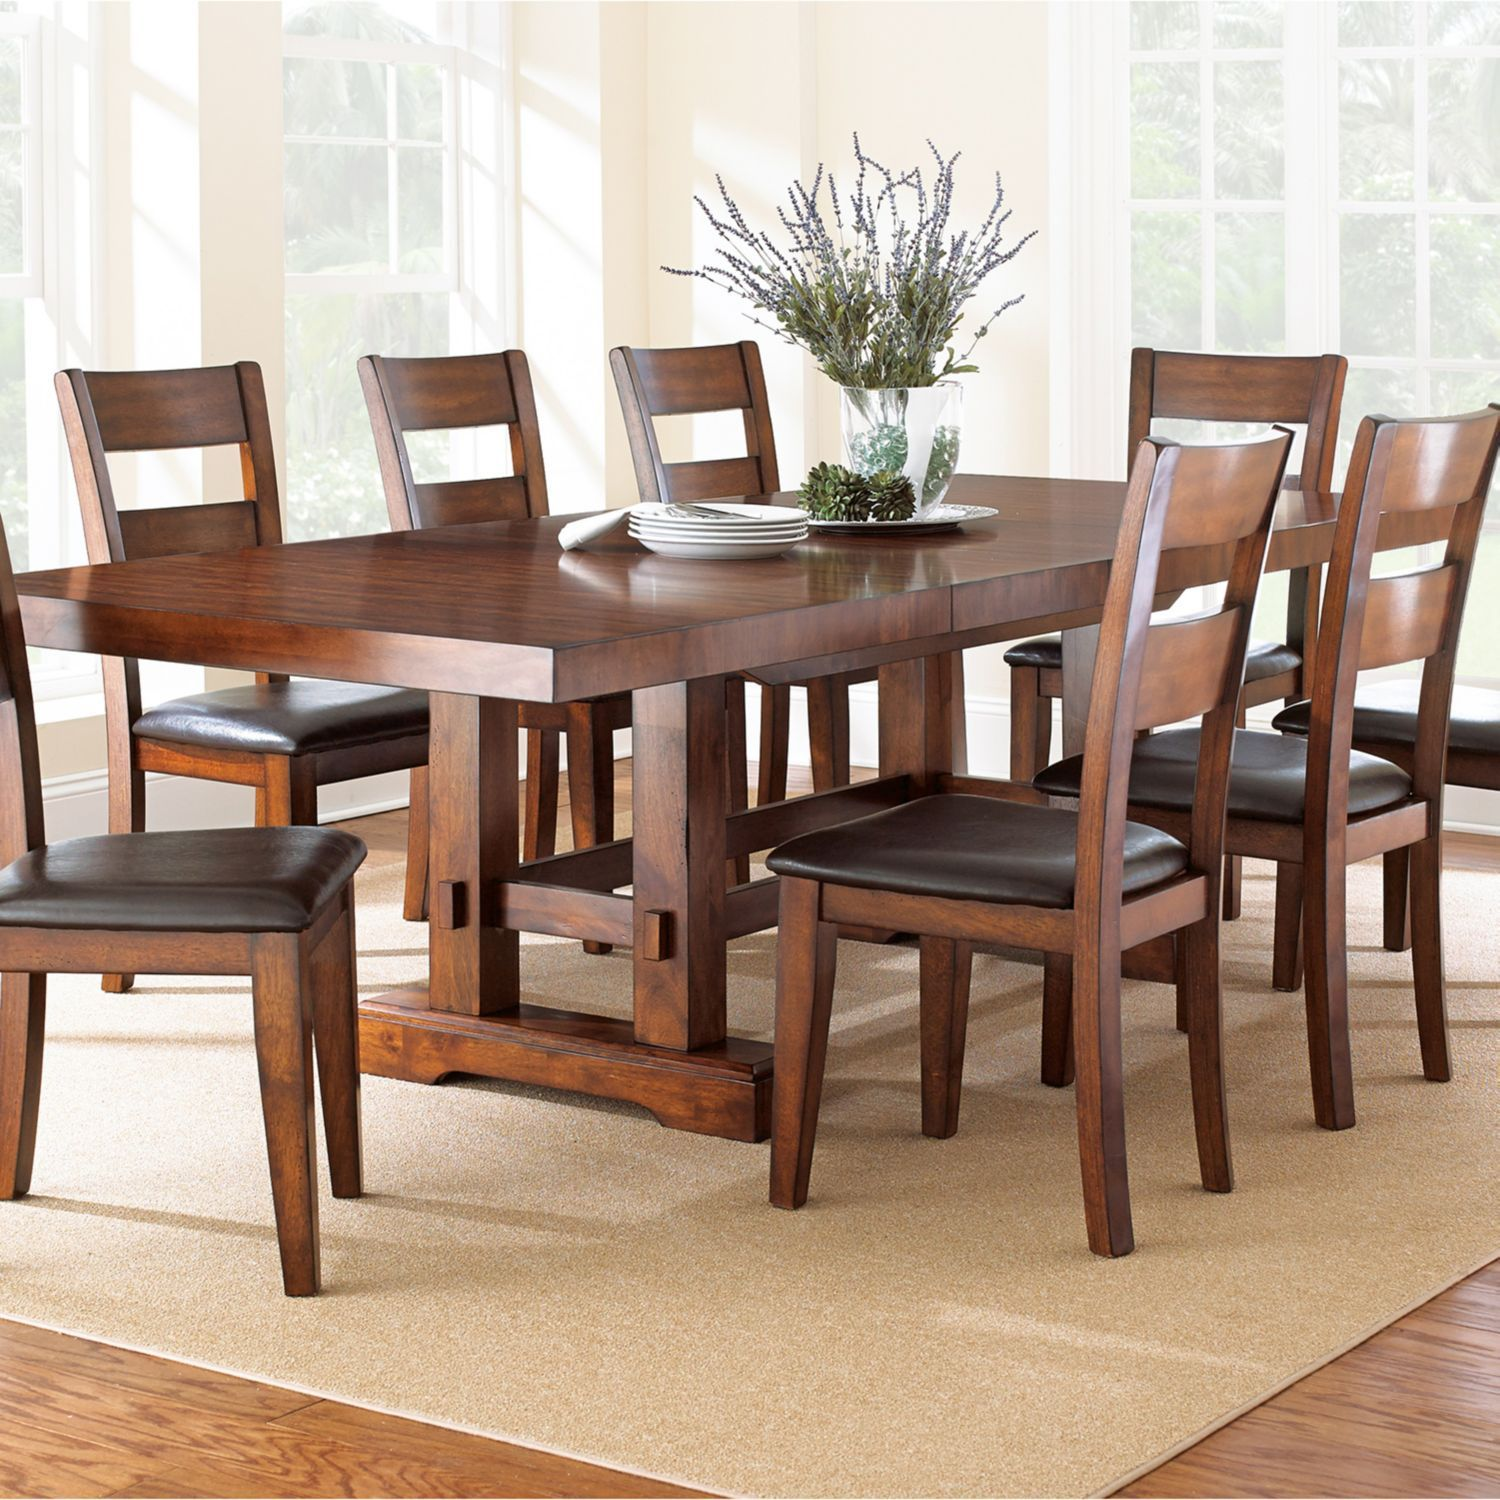 Room Ziva Dining 9 Piece